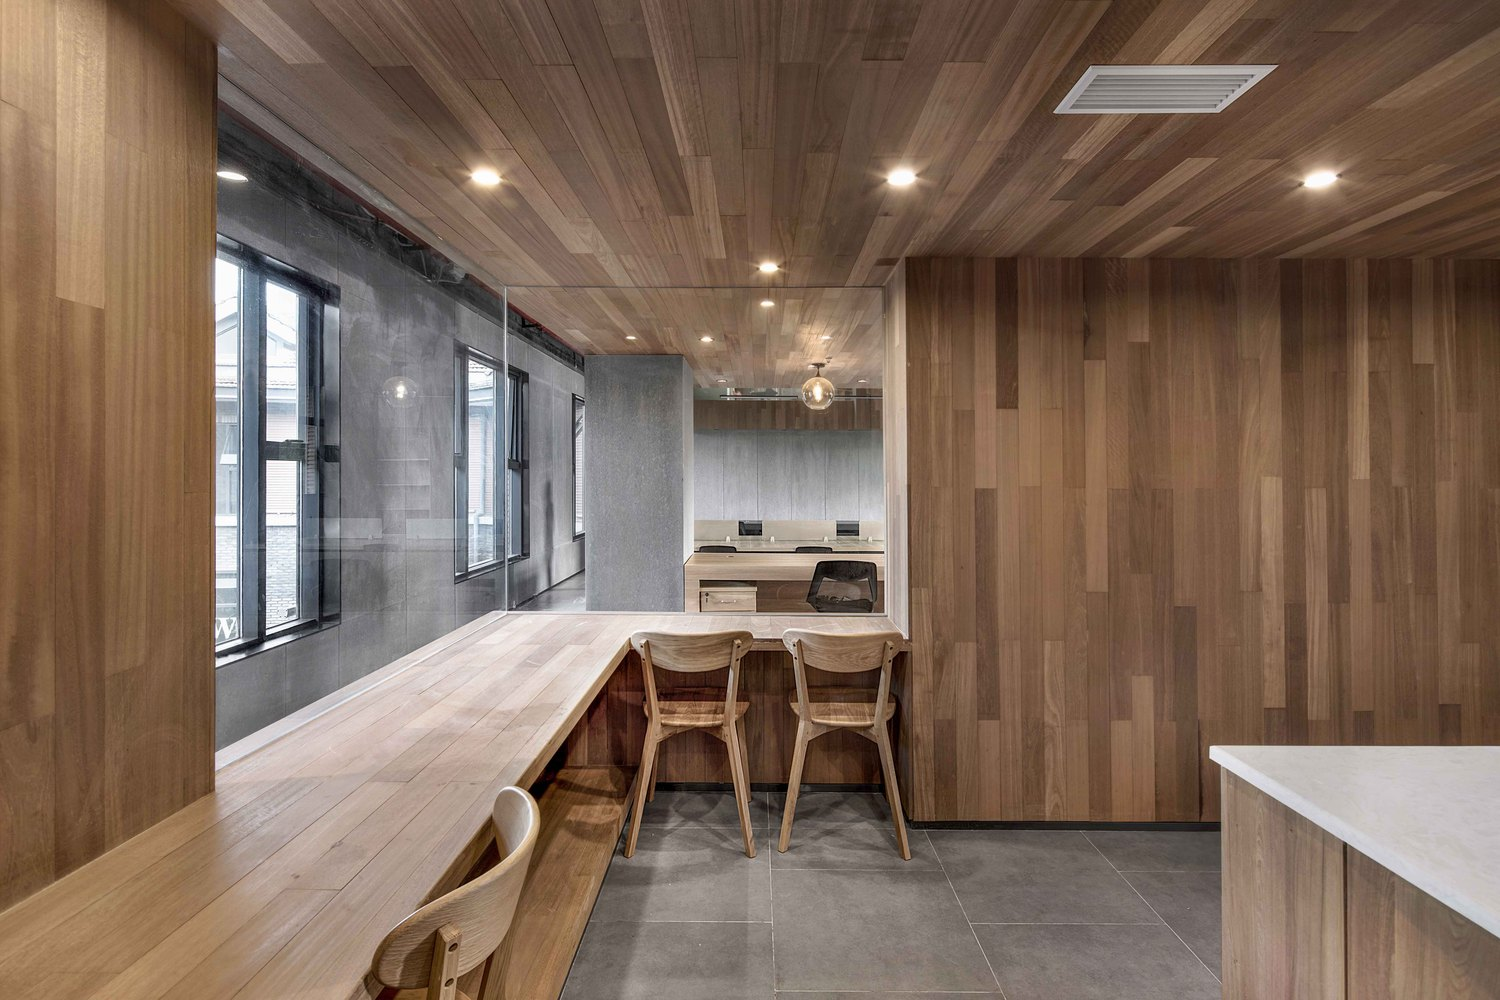 Zhongshan Road CoWorking Space,Office Pantry Level 2. Image © ARCHEXIST